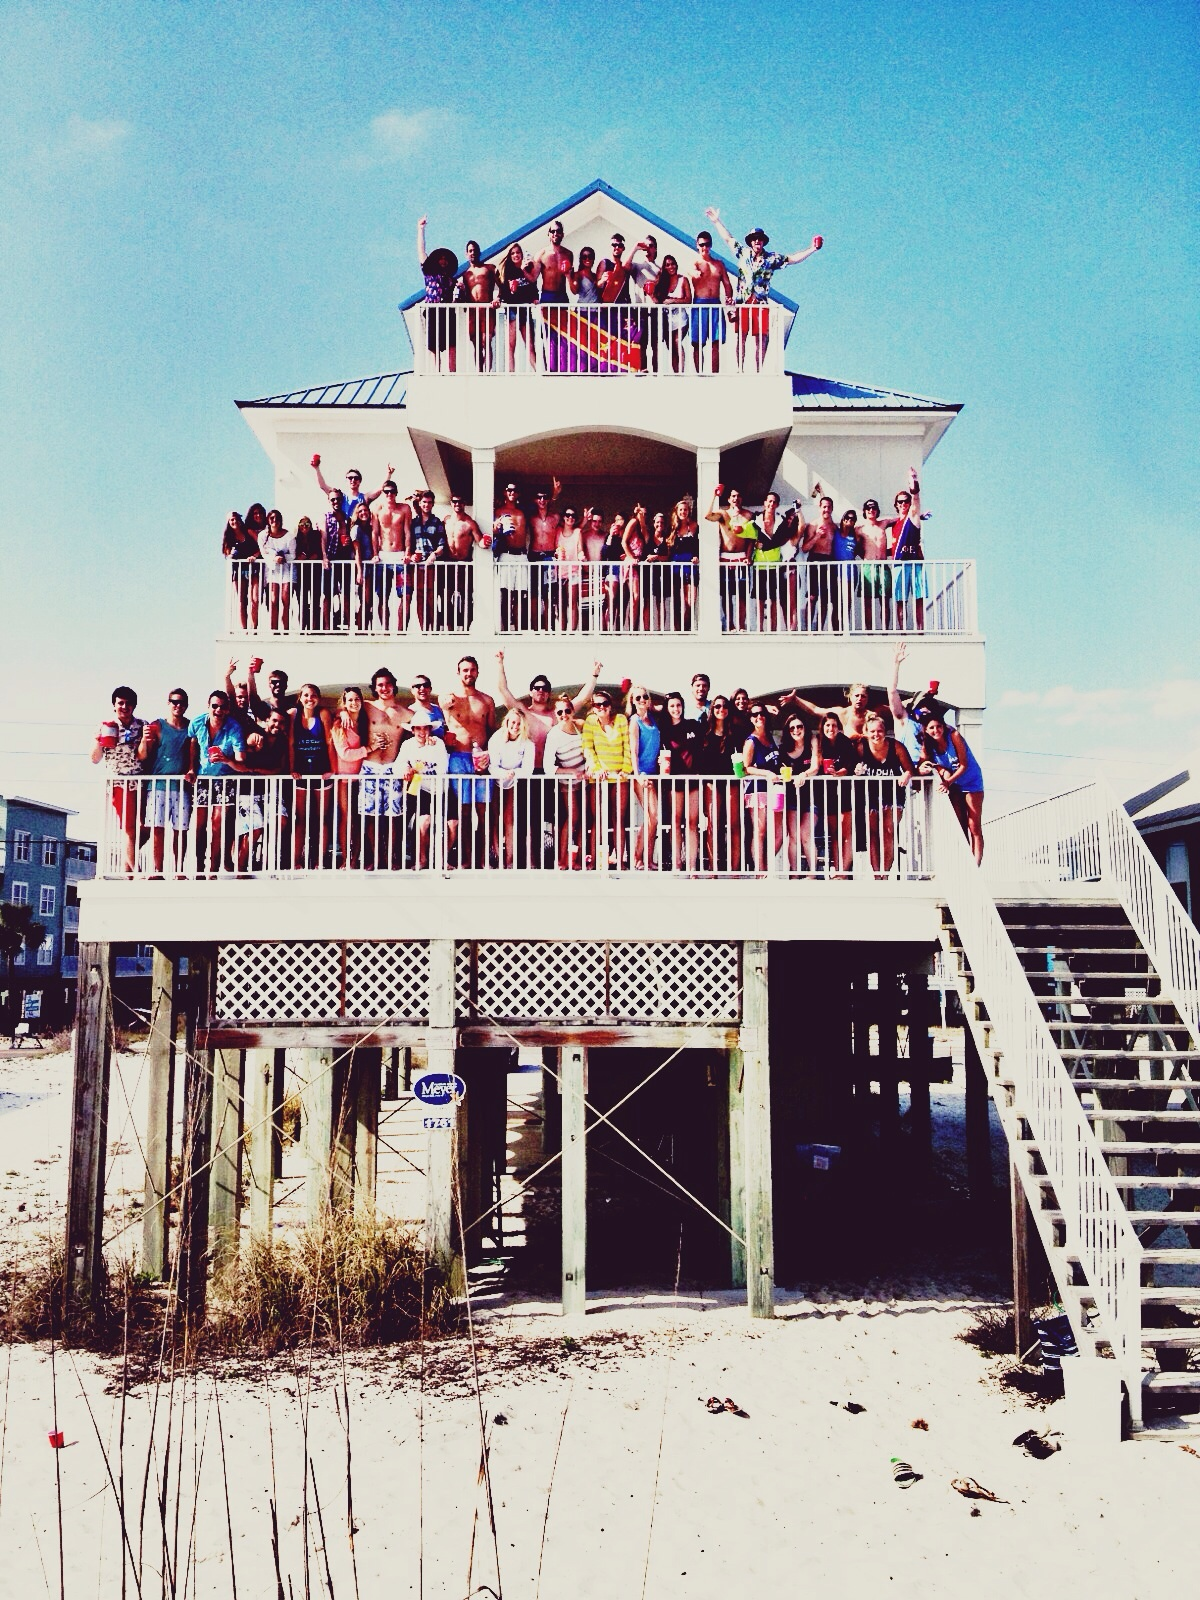 Owning the beach. TFM.